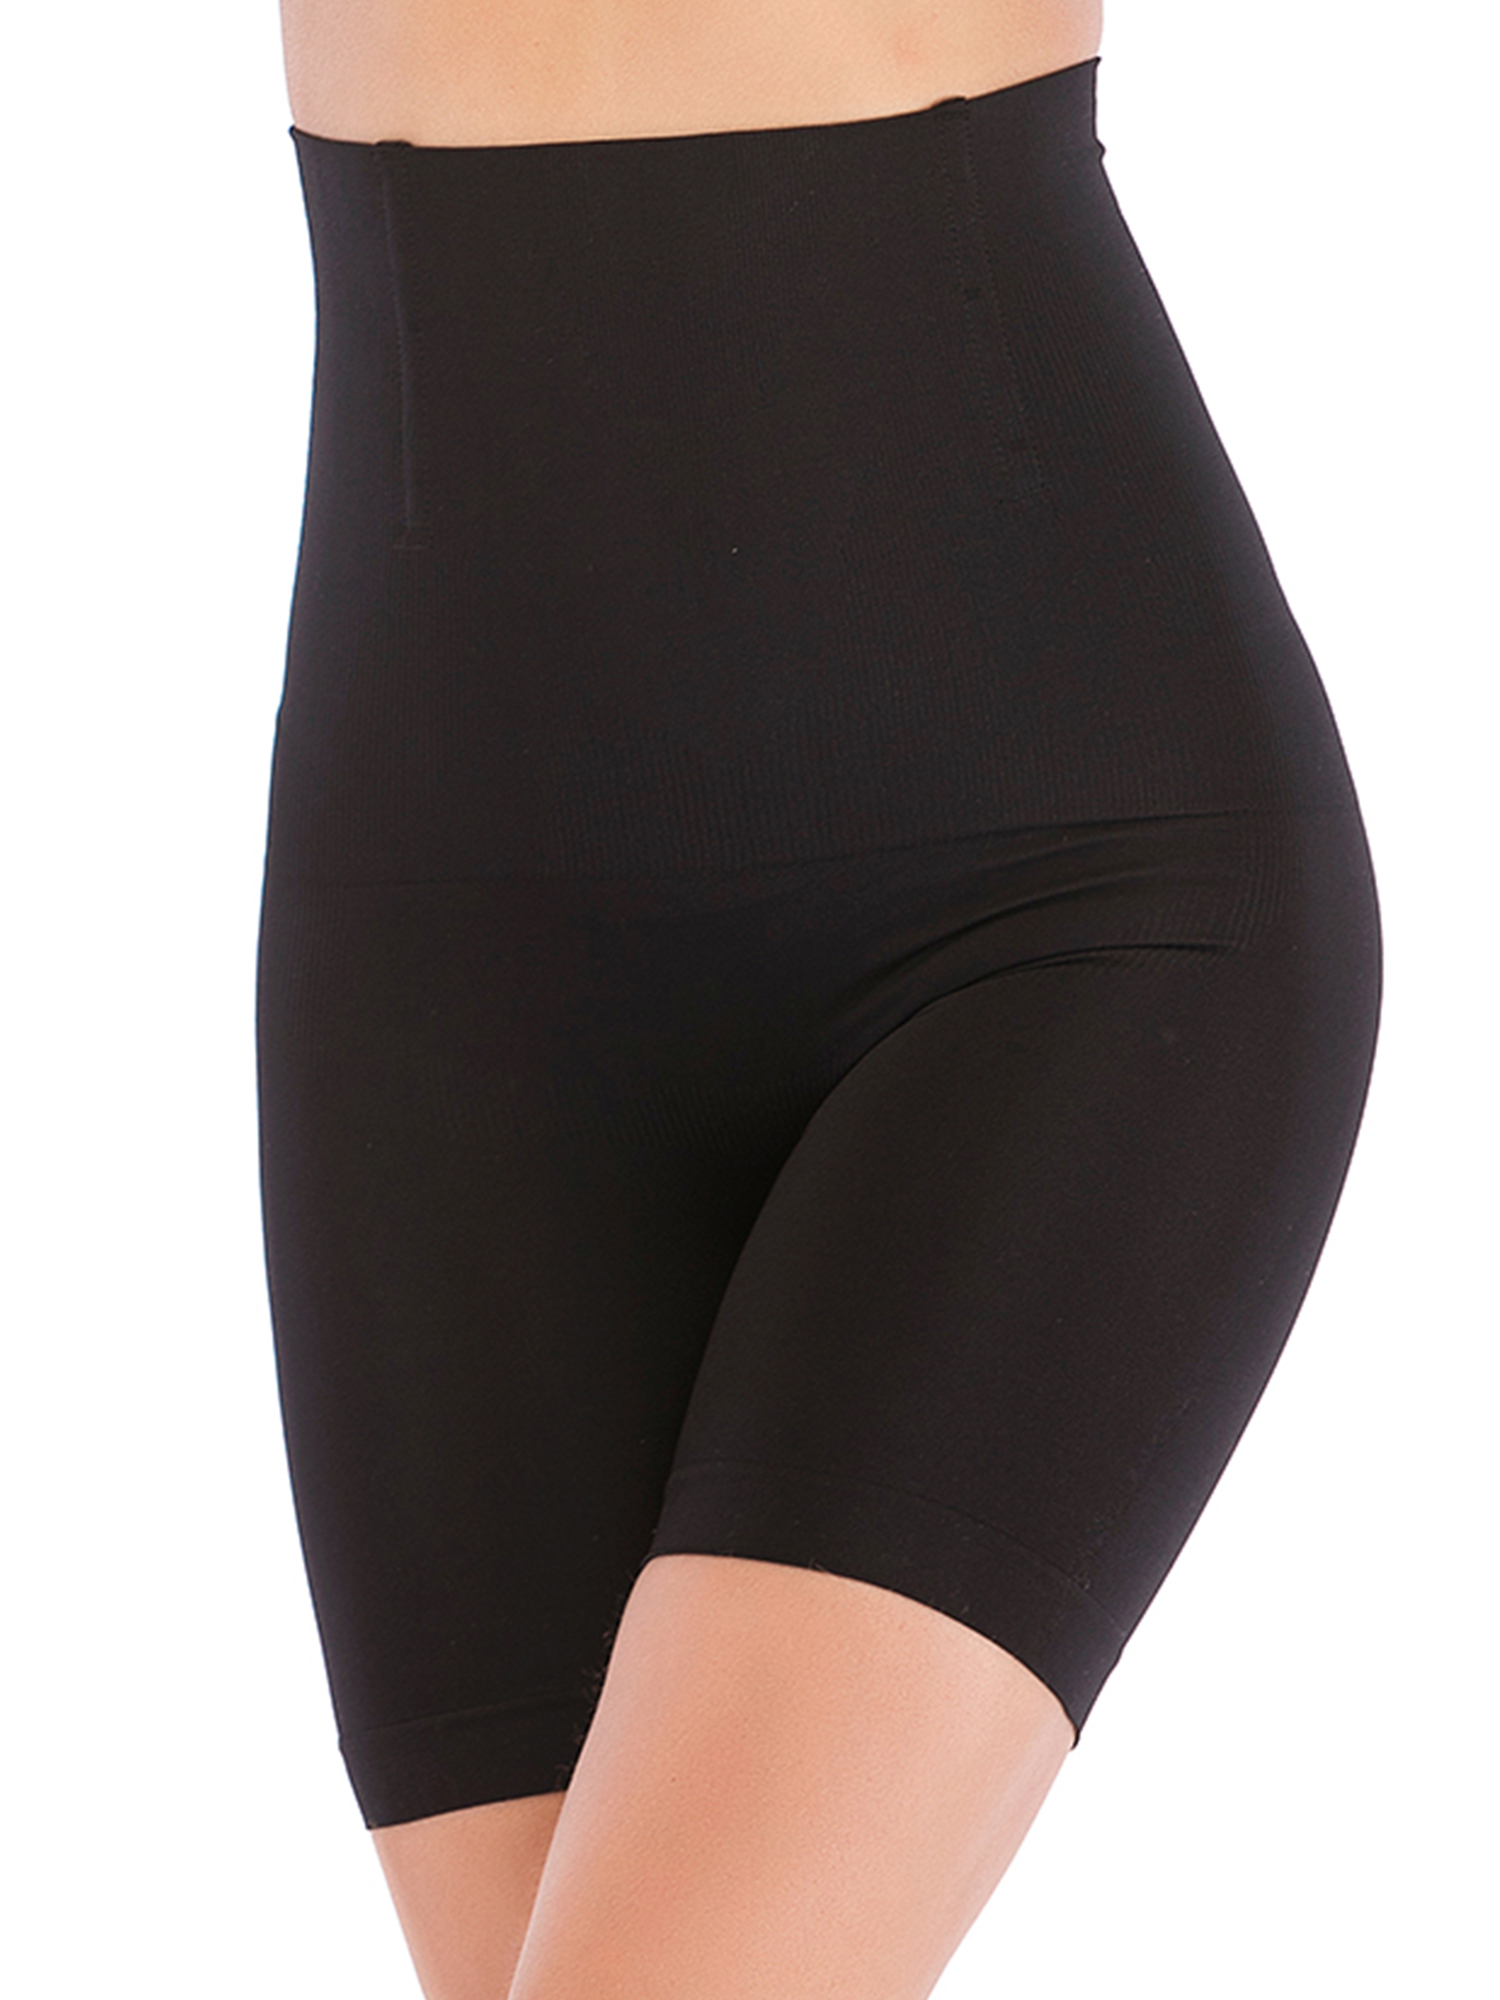 Instant Shaping Womens Plus Size 1X Black High Waist Thigh Seamless Shaper New